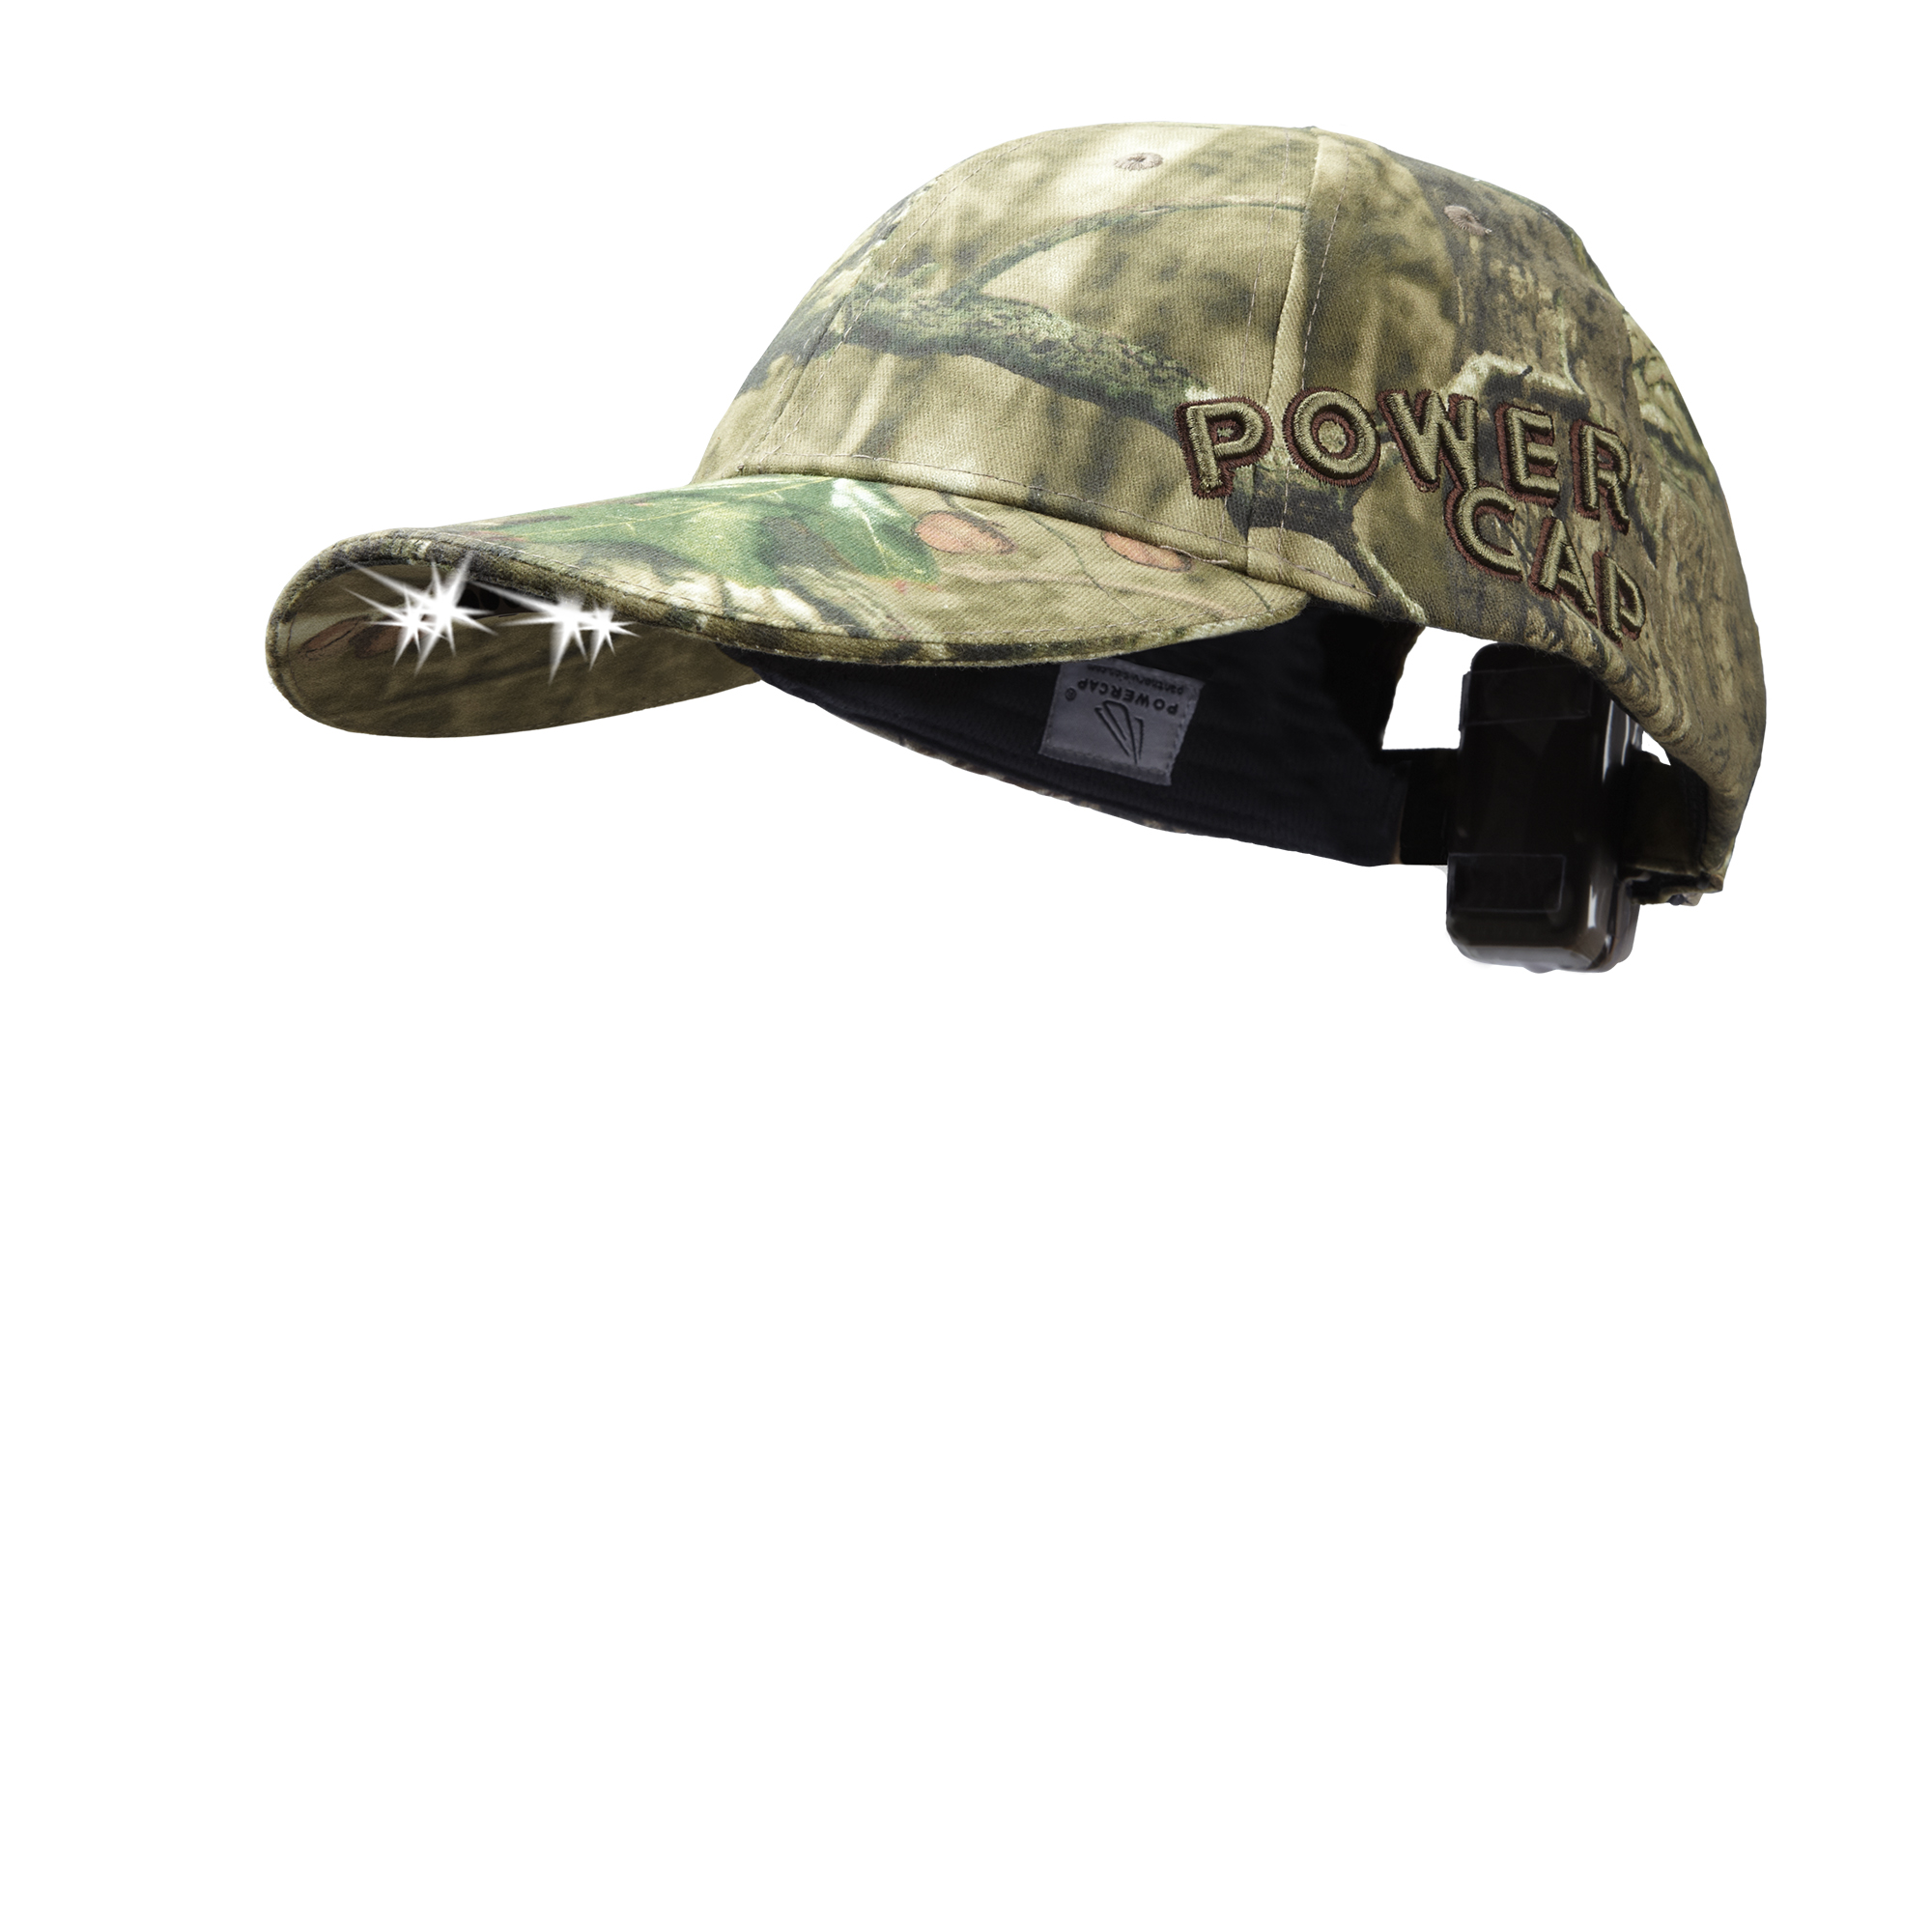 Powercap EXP100 Headlamp Hat with 6 LEDs, Mossy Oak Infinity